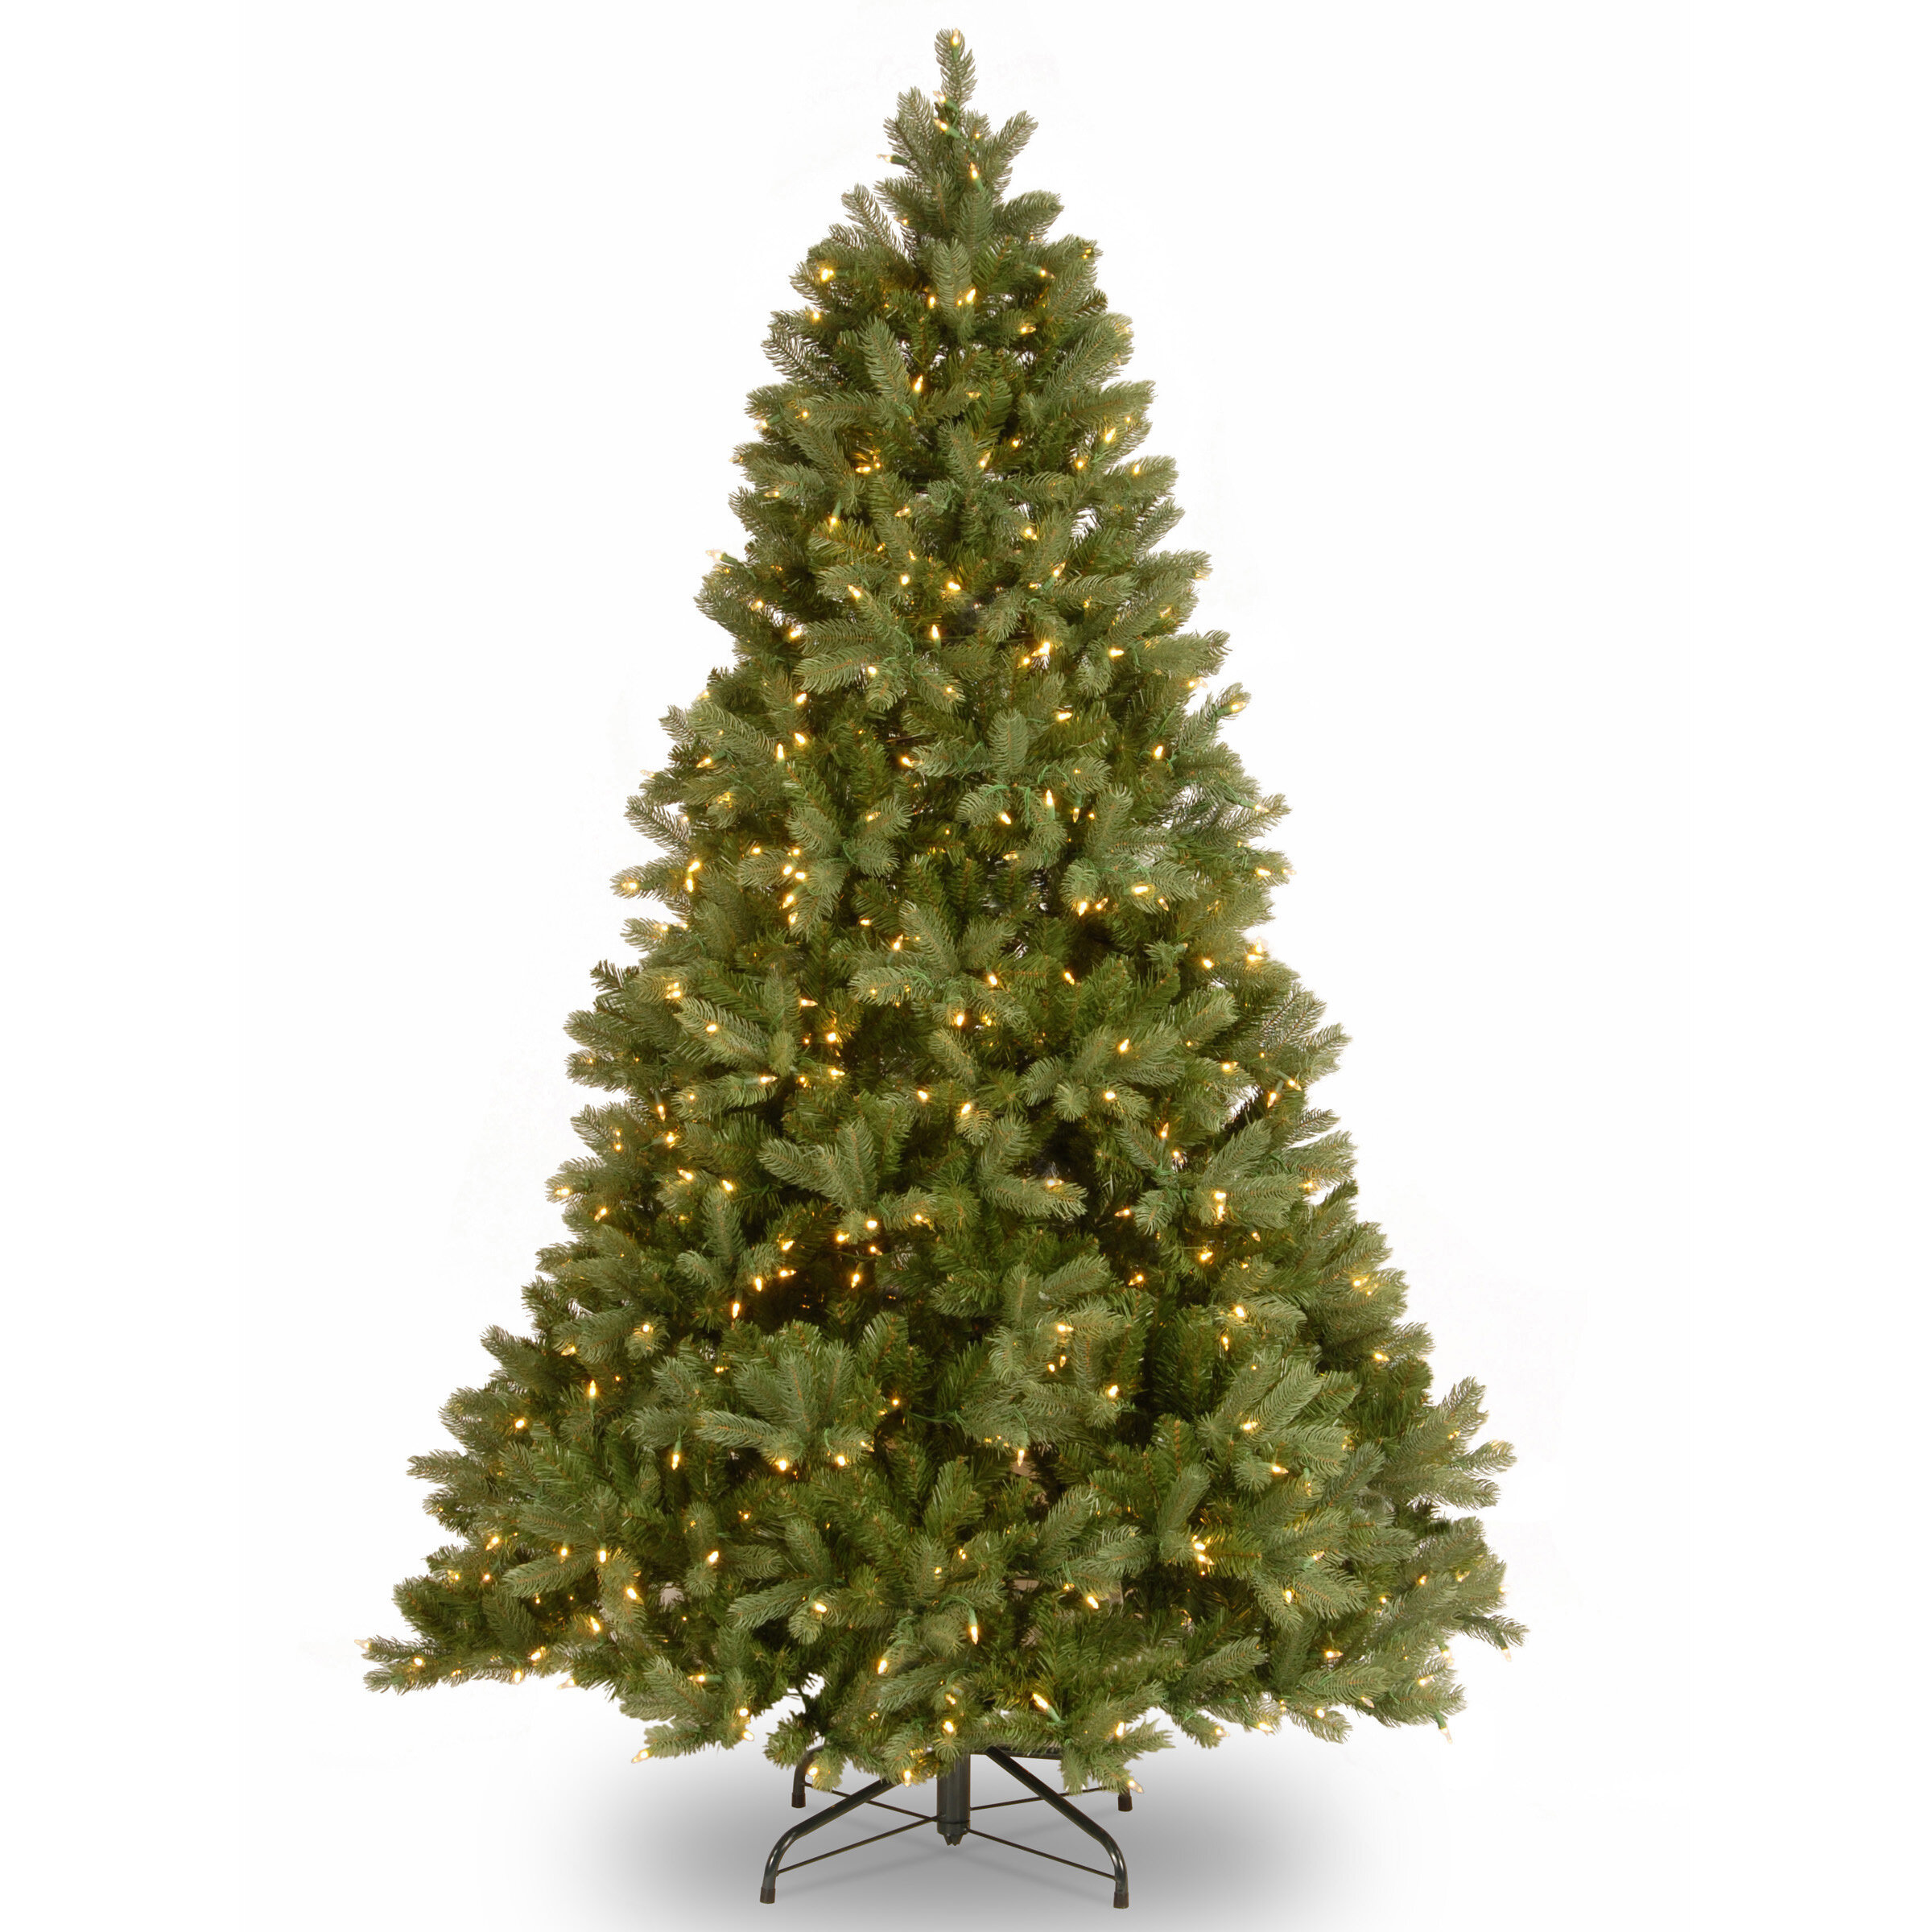 Christmas Tree Colors.Fir 7 5 Green Artificial Christmas Tree With 750 Dual Color Led Lights With Stand